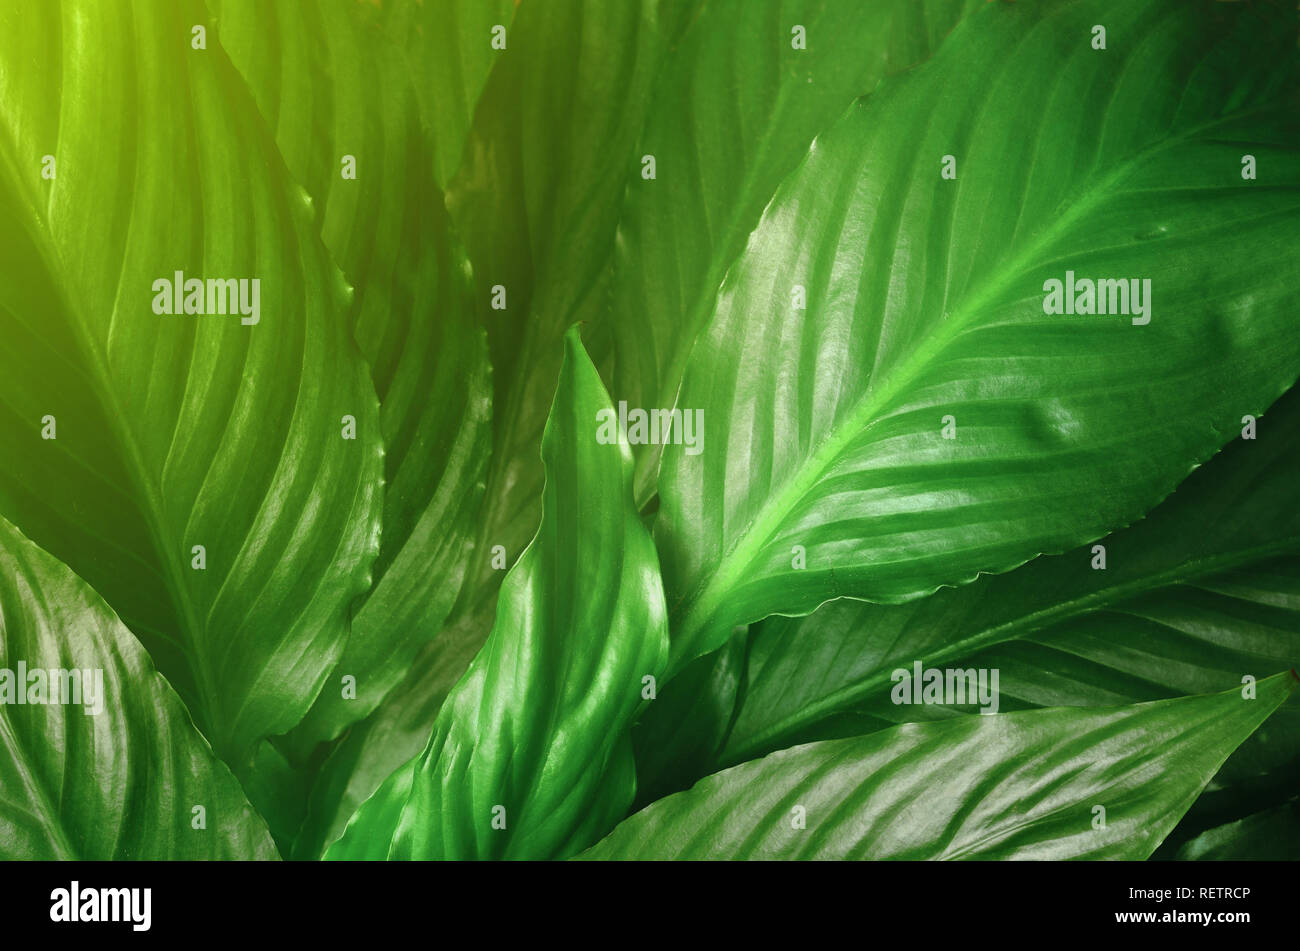 Green Leaves background,Creative layout made of green leaves. Flat lay. Nature concept. Stock Photo